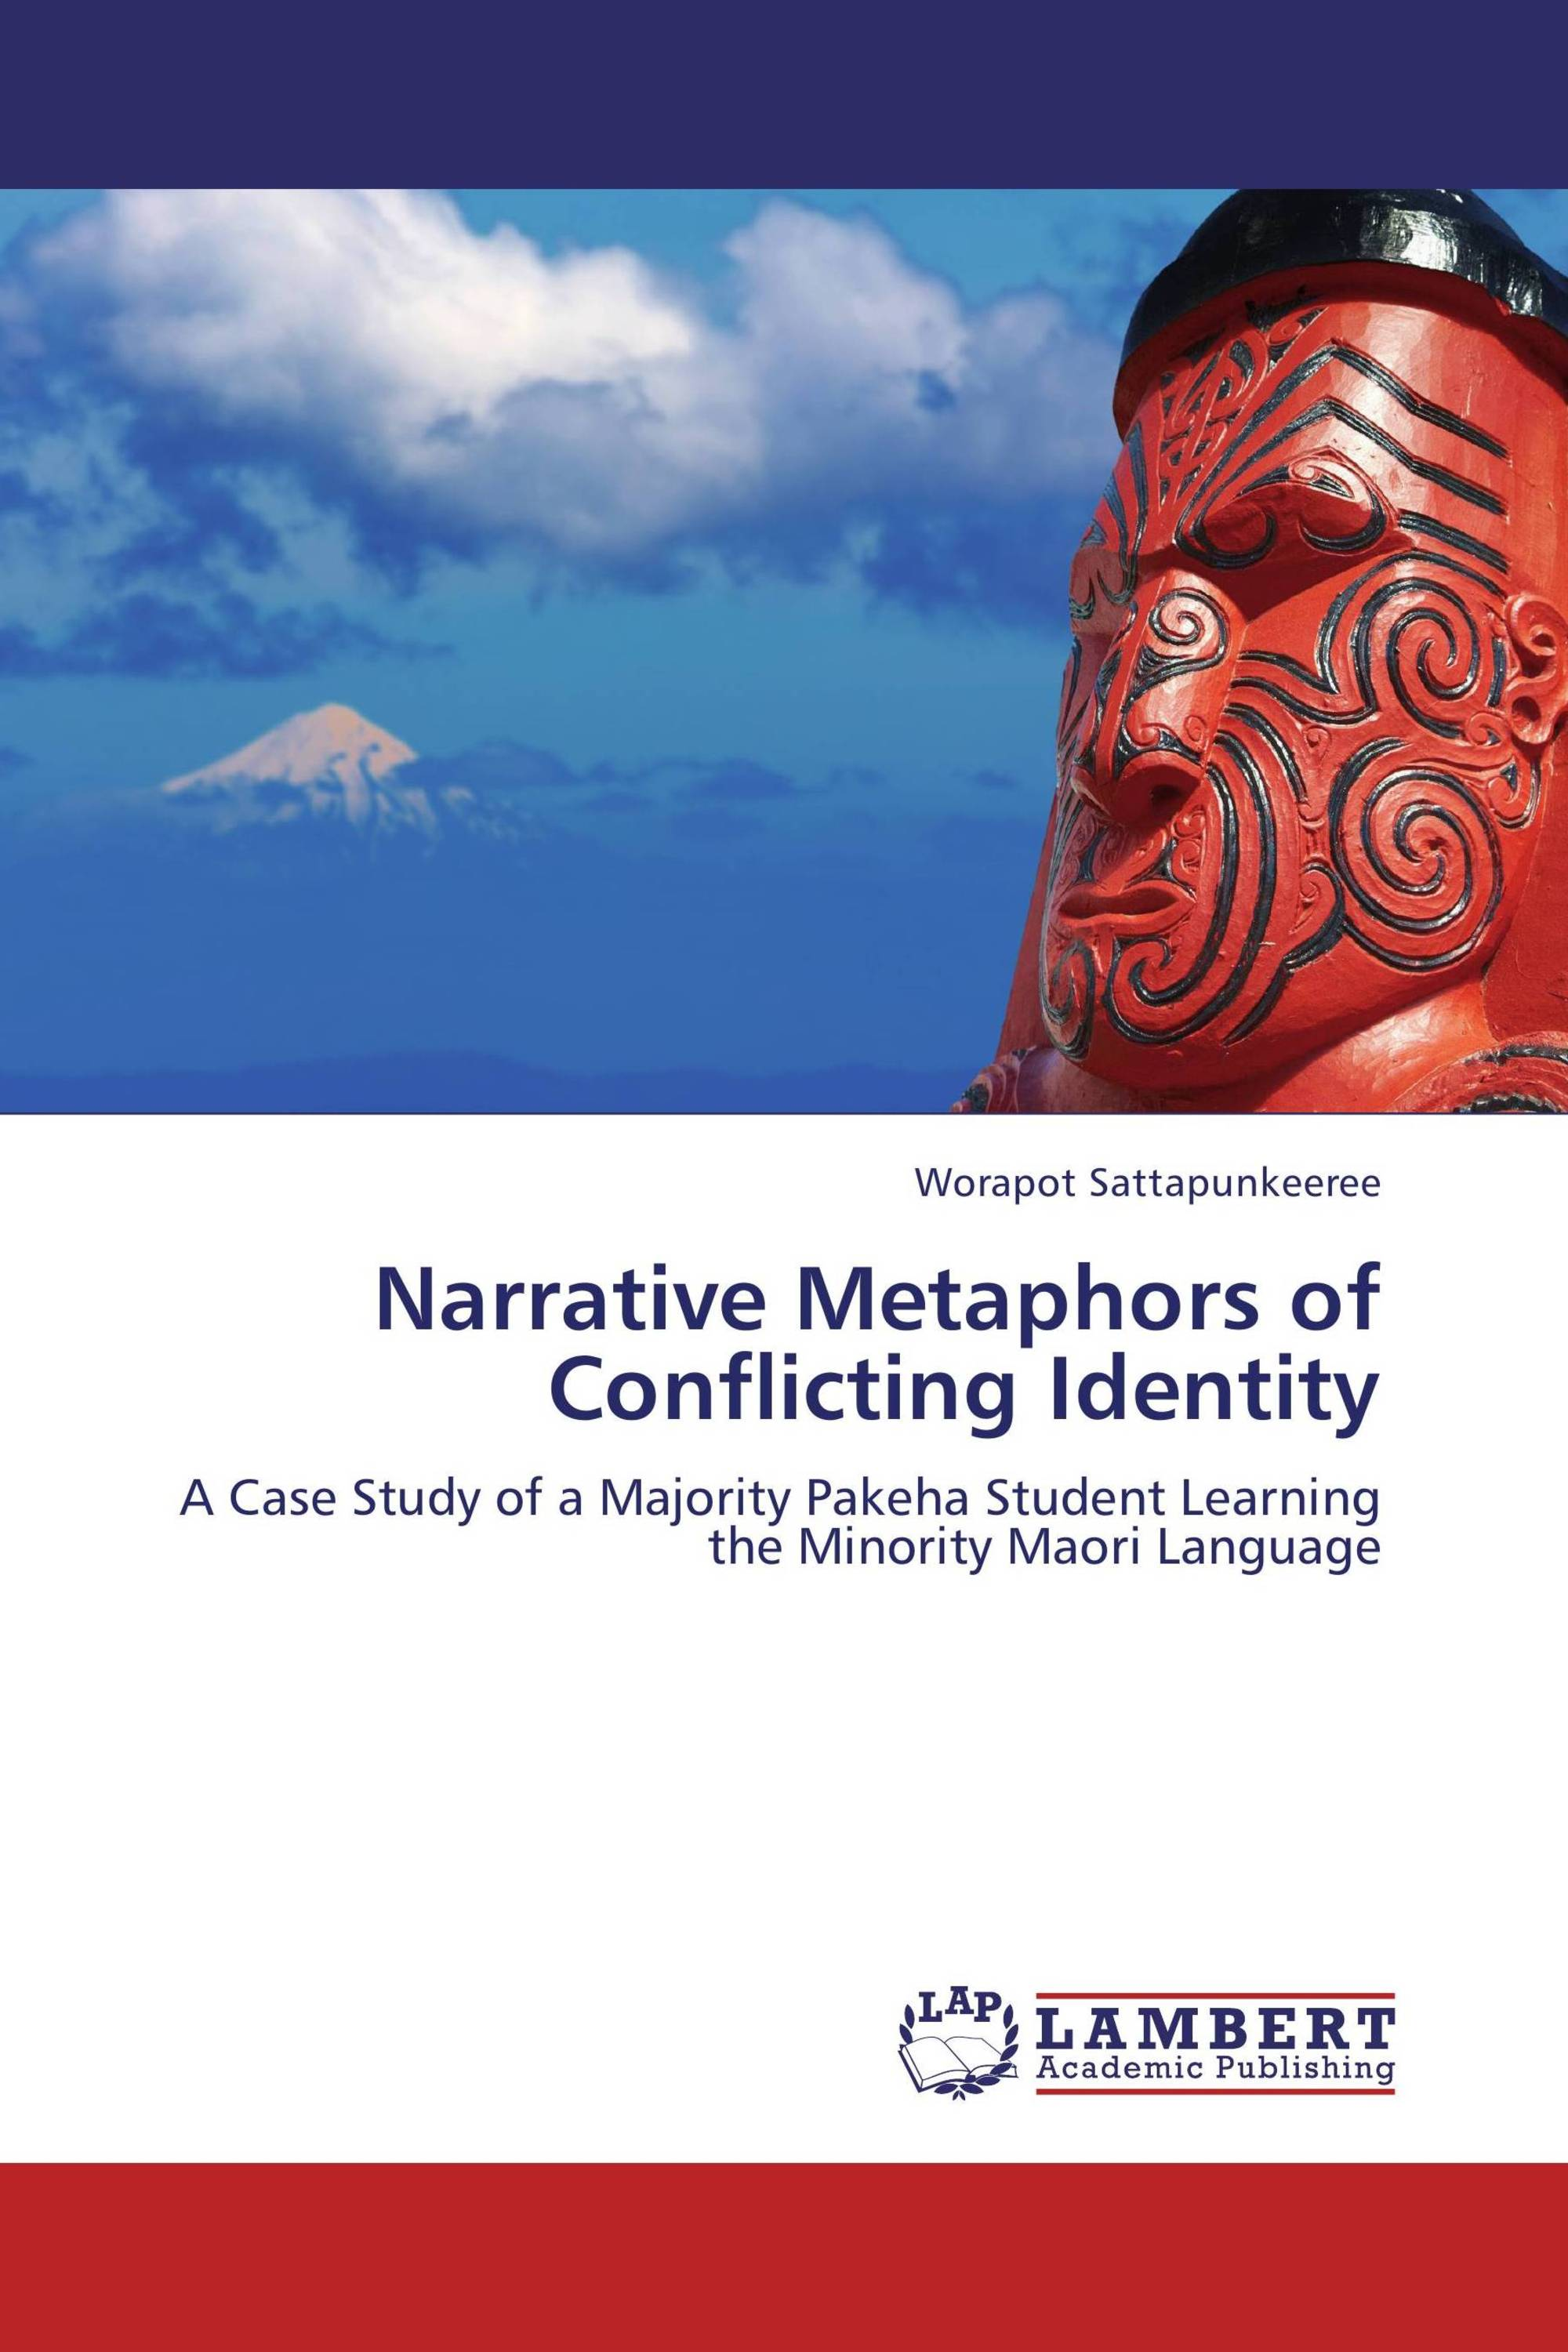 Narrative Metaphors of Conflicting Identity